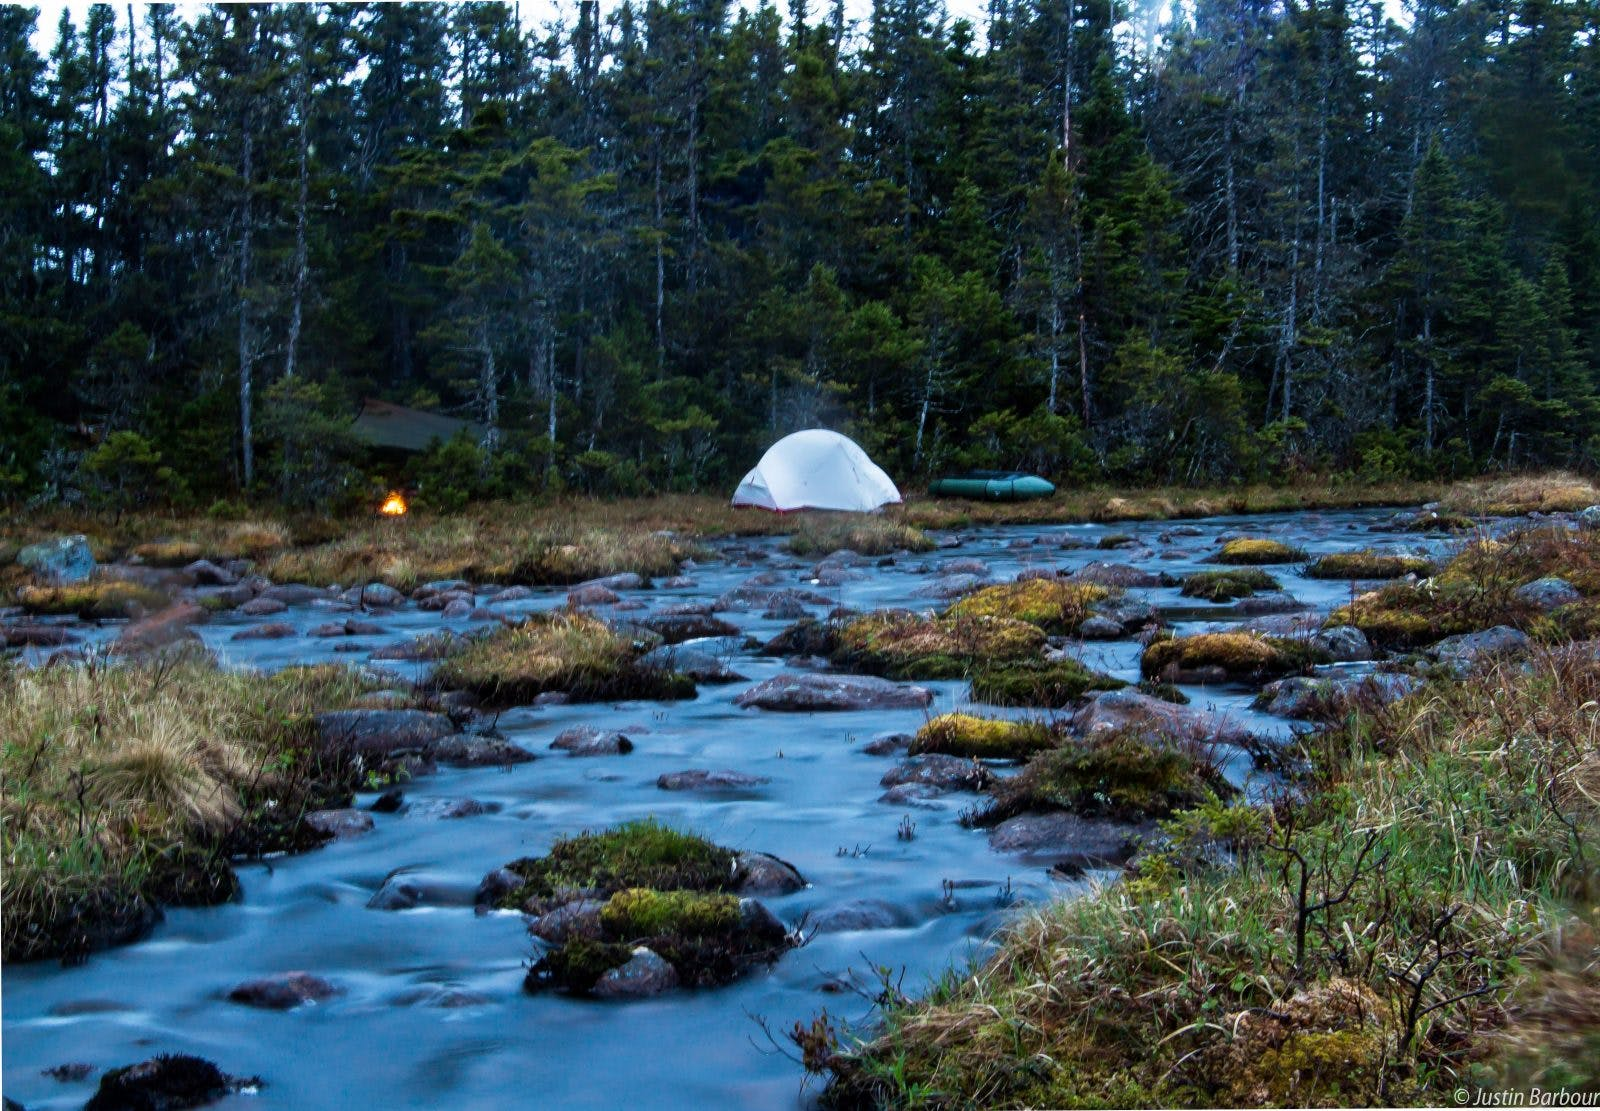 """""""Home is where ever you want it to be. Having a camp near running water is soothing and mediative. It's where I sleep the best. This photo is of the Meta Pond area in Newfoundland's Bay Du Nord Wilderness Reserve. Minus the transmission line (that I despise) in the southern extremities, this place is still very wild and remote. It is a vast 2,895 square km paradise for the outdoor enthusiast, with prime opportunities for fishing, hunting, foraging, paddling, hiking, observing wildlife, and just living the dream. In my travels there I have seen very little sign of human disturbance. Let's try and keep it that way."""""""